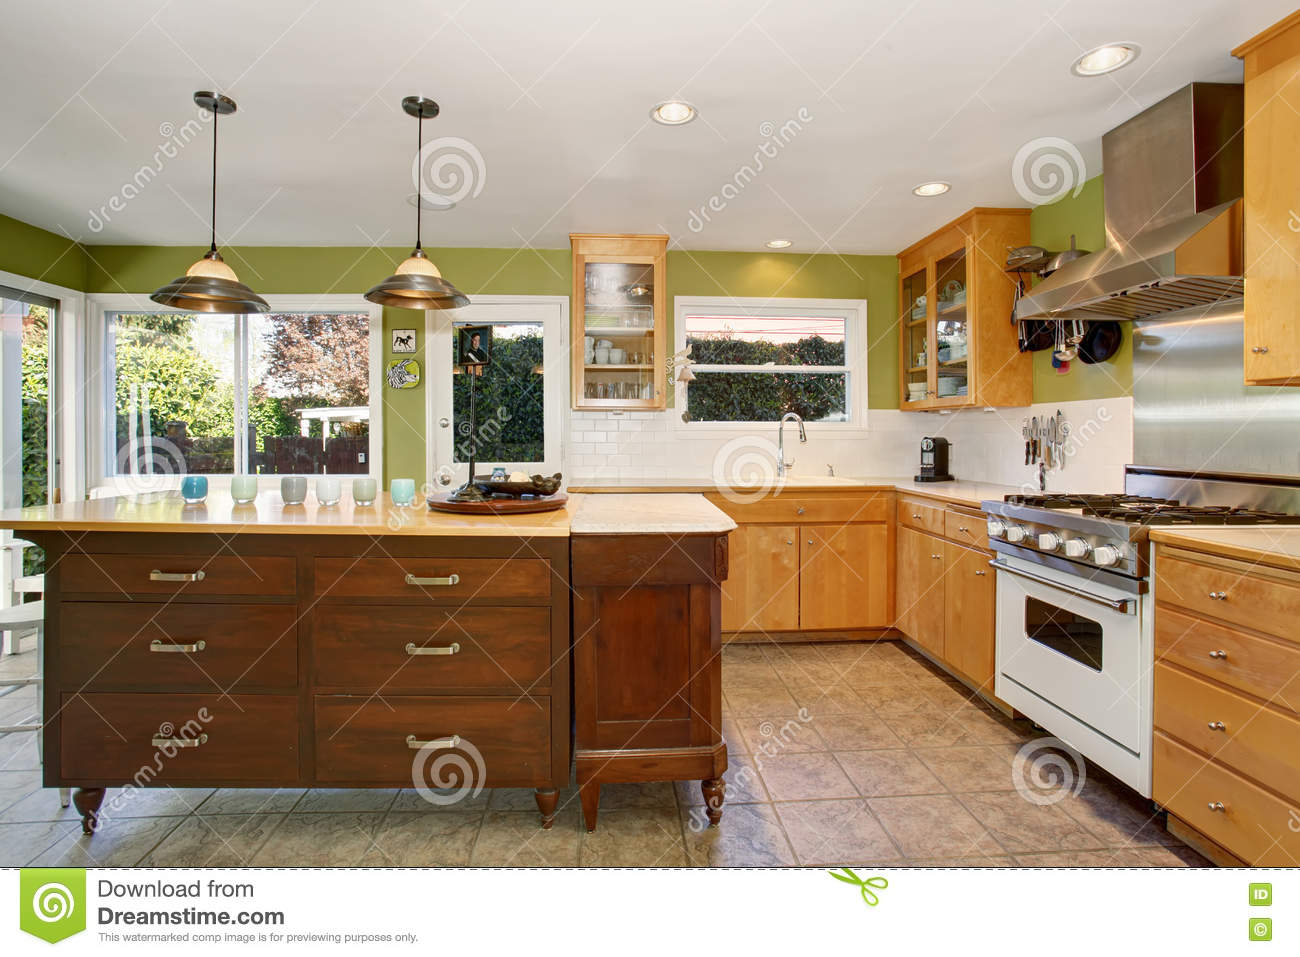 Small Kitchen Room Interior With Green Walls And Tile Floor Stock Photo Image Of House Steel 74365766